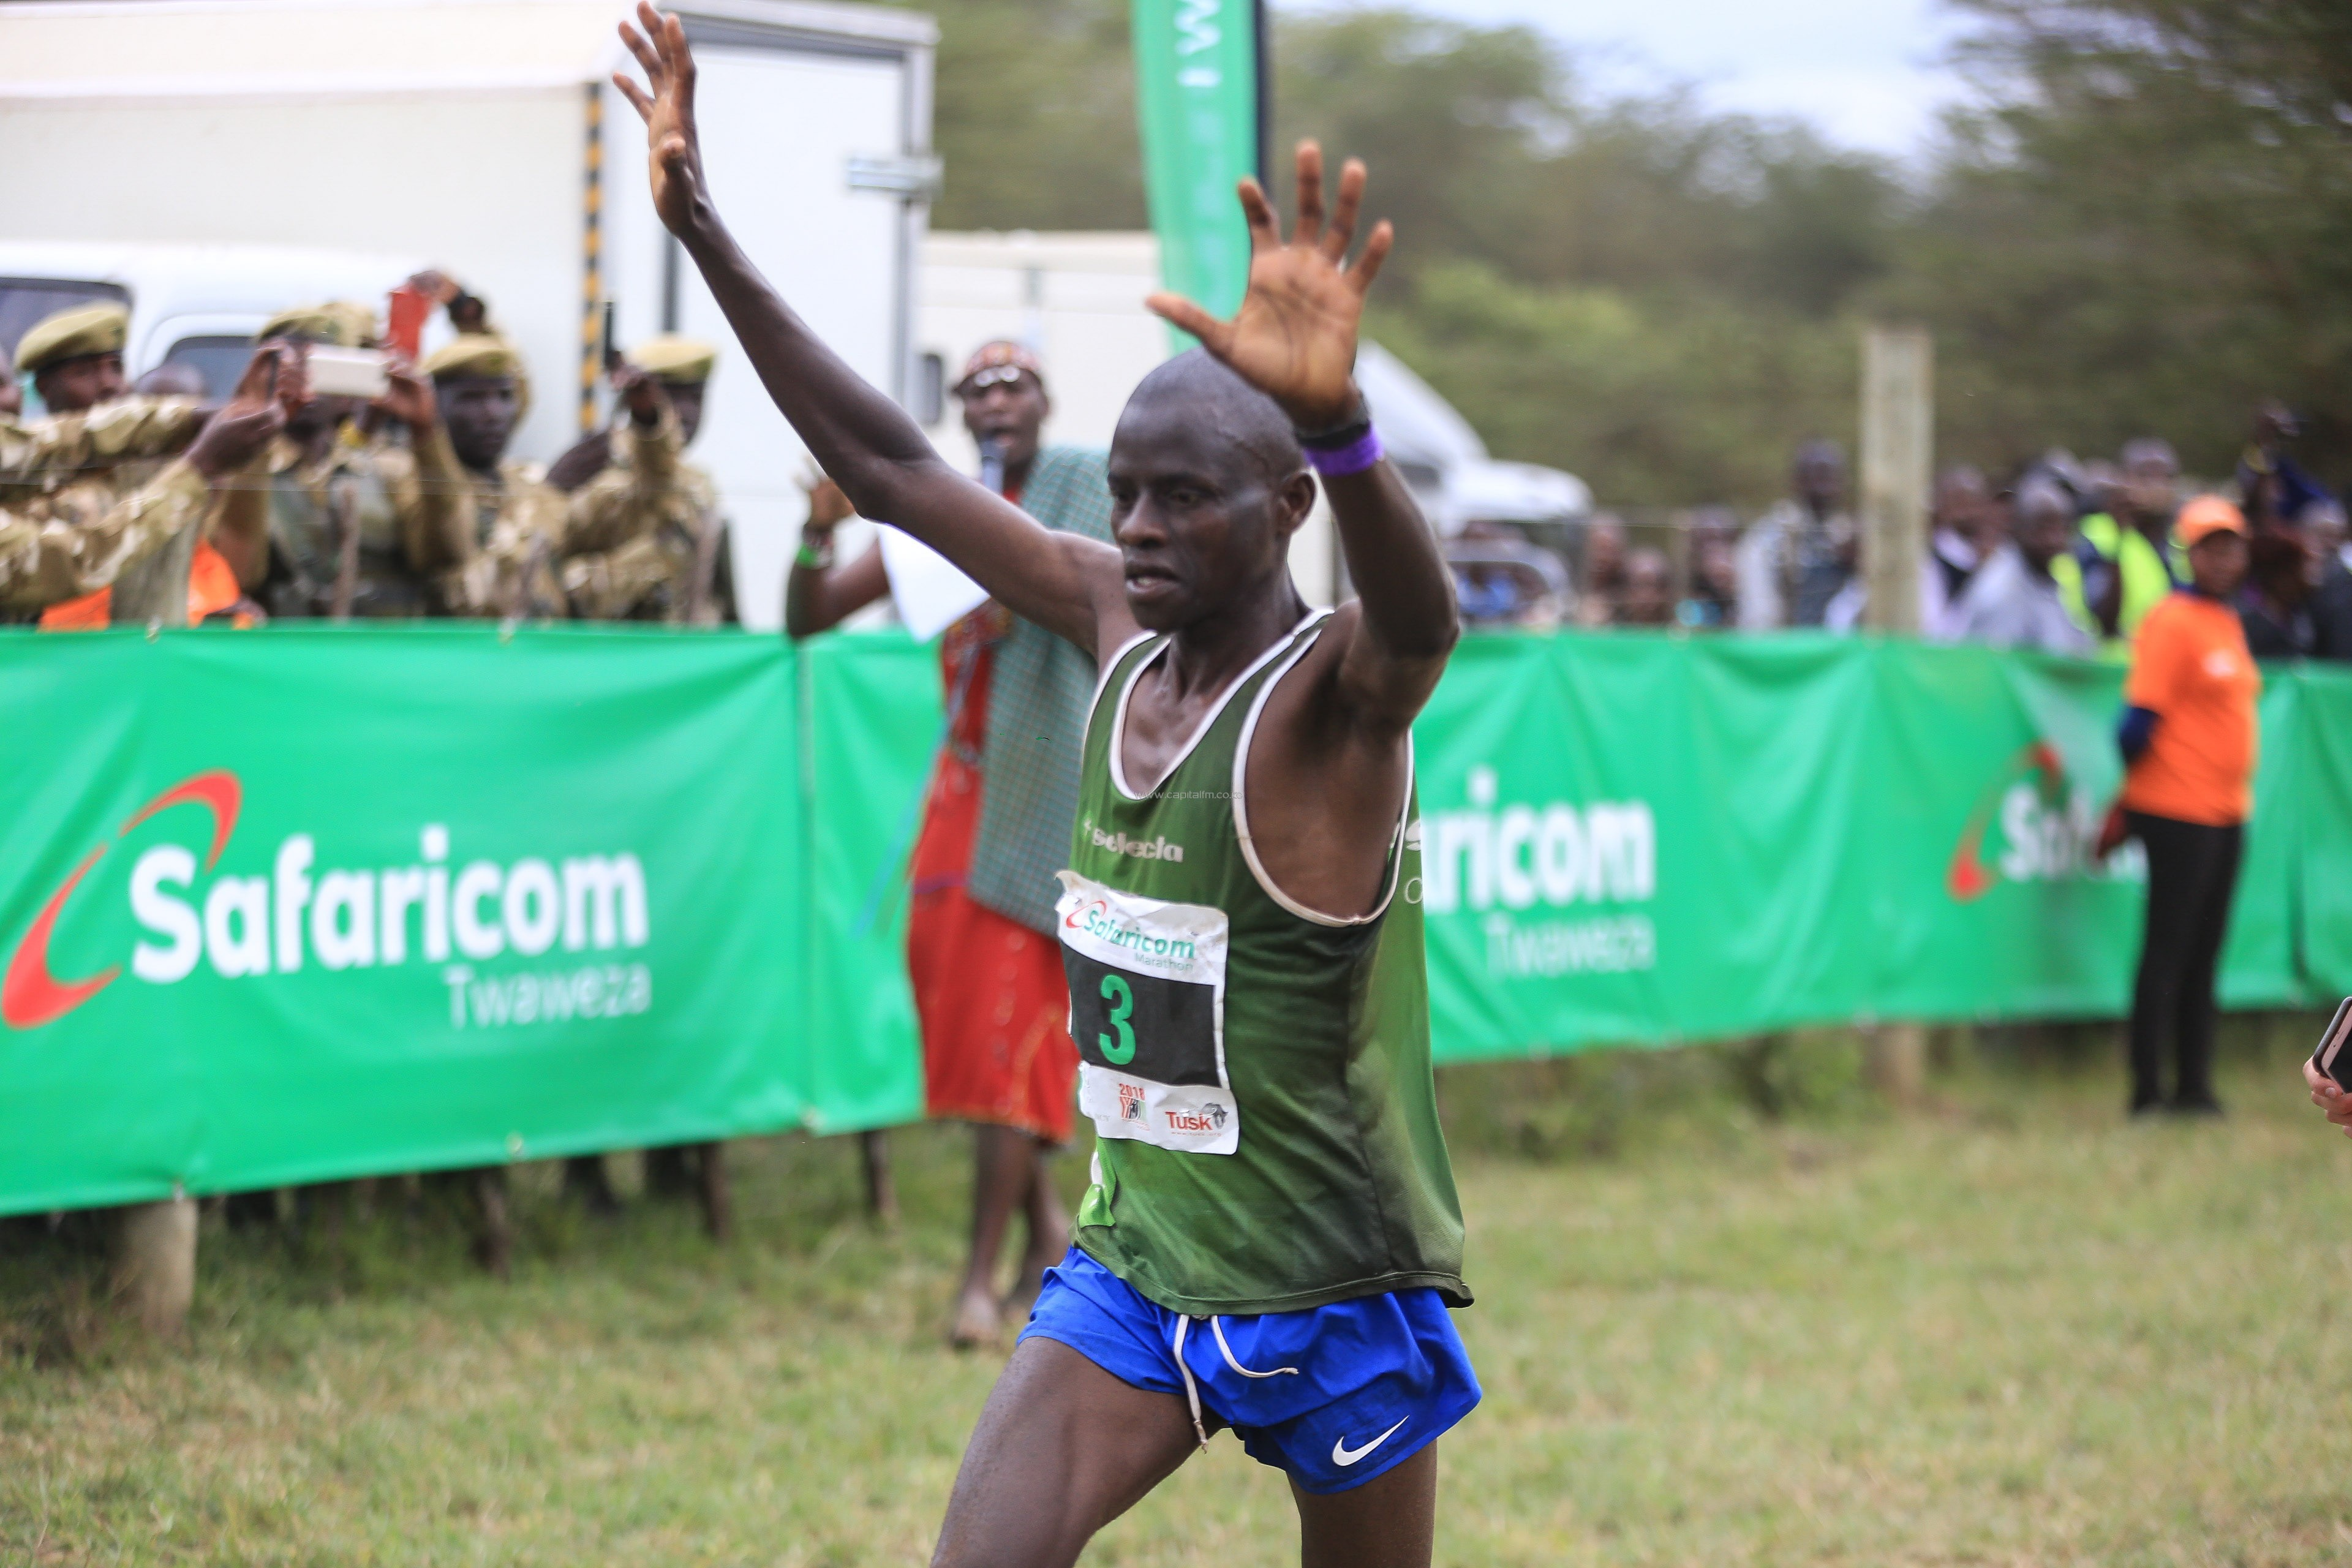 Philemon Mbaaru wins the Safaricom Lewa Marathon for the sixth time once Rhinos were cleared off the course